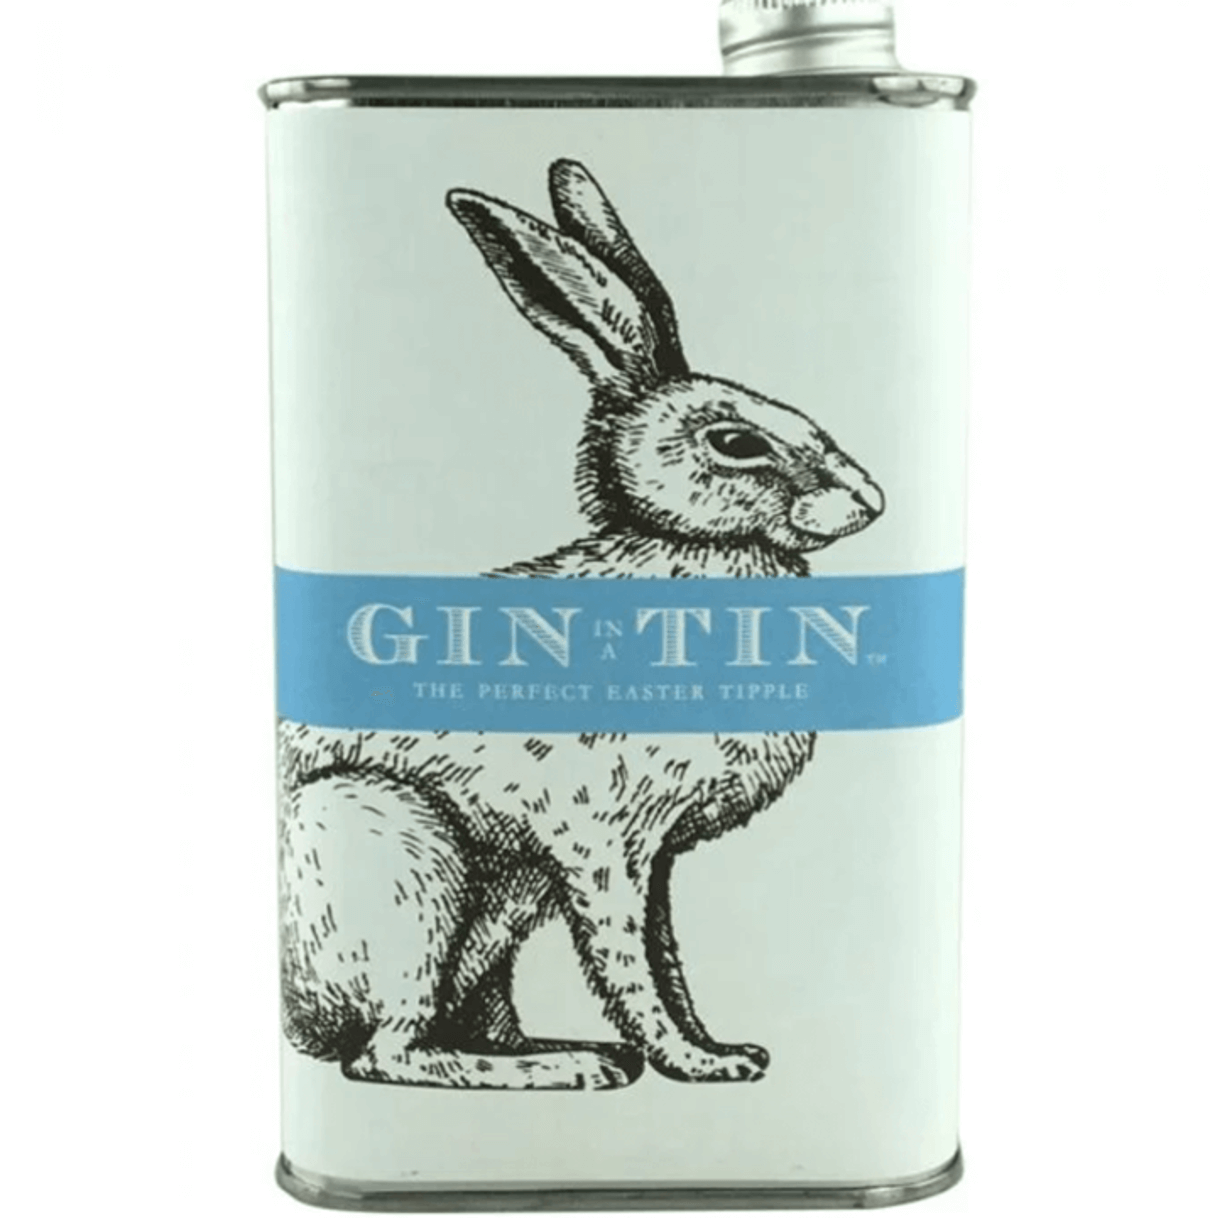 Gin in a tin